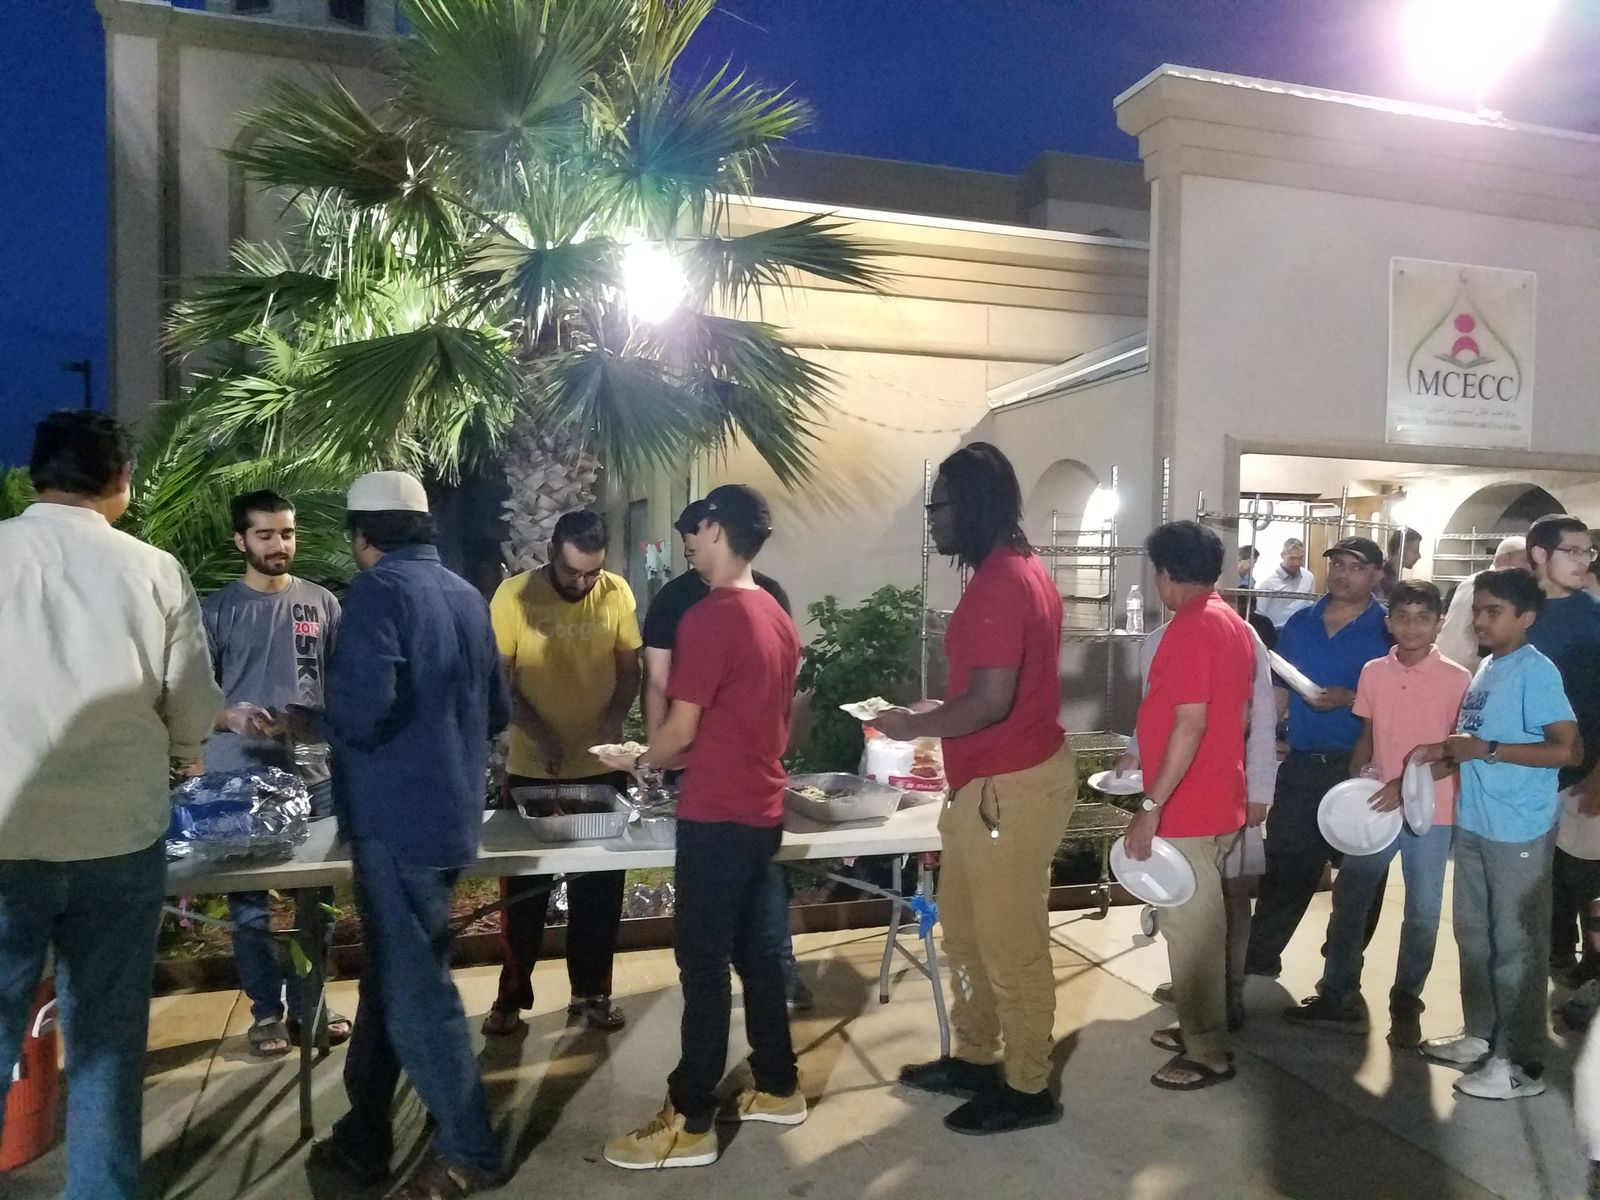 The local Muslim community celebrates with non-Muslims at the recent Fastathon at the Muslim Children Education and Civic Center. (SBG San Antonio)